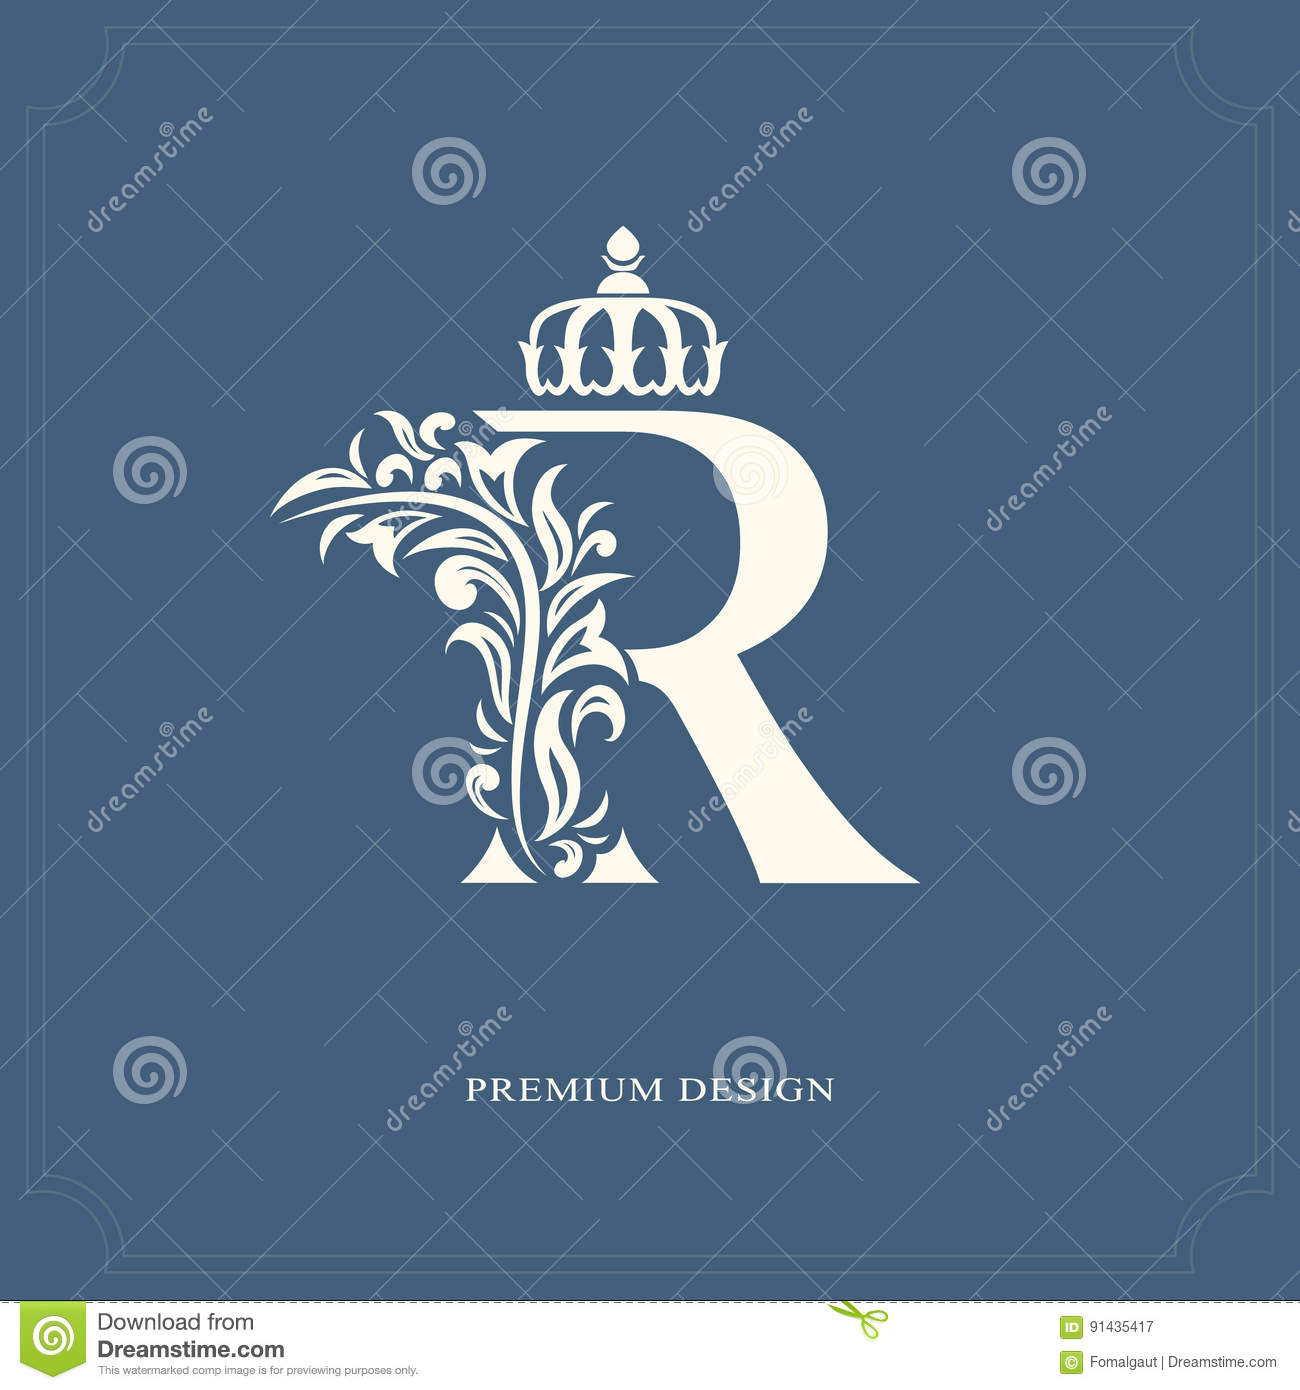 Vector Illustration Of Elegant Letter R With A Crown Graceful Royal Style Calligraphic Beautiful Logo Vintage Drawn Emblem For Book Design Brand Name